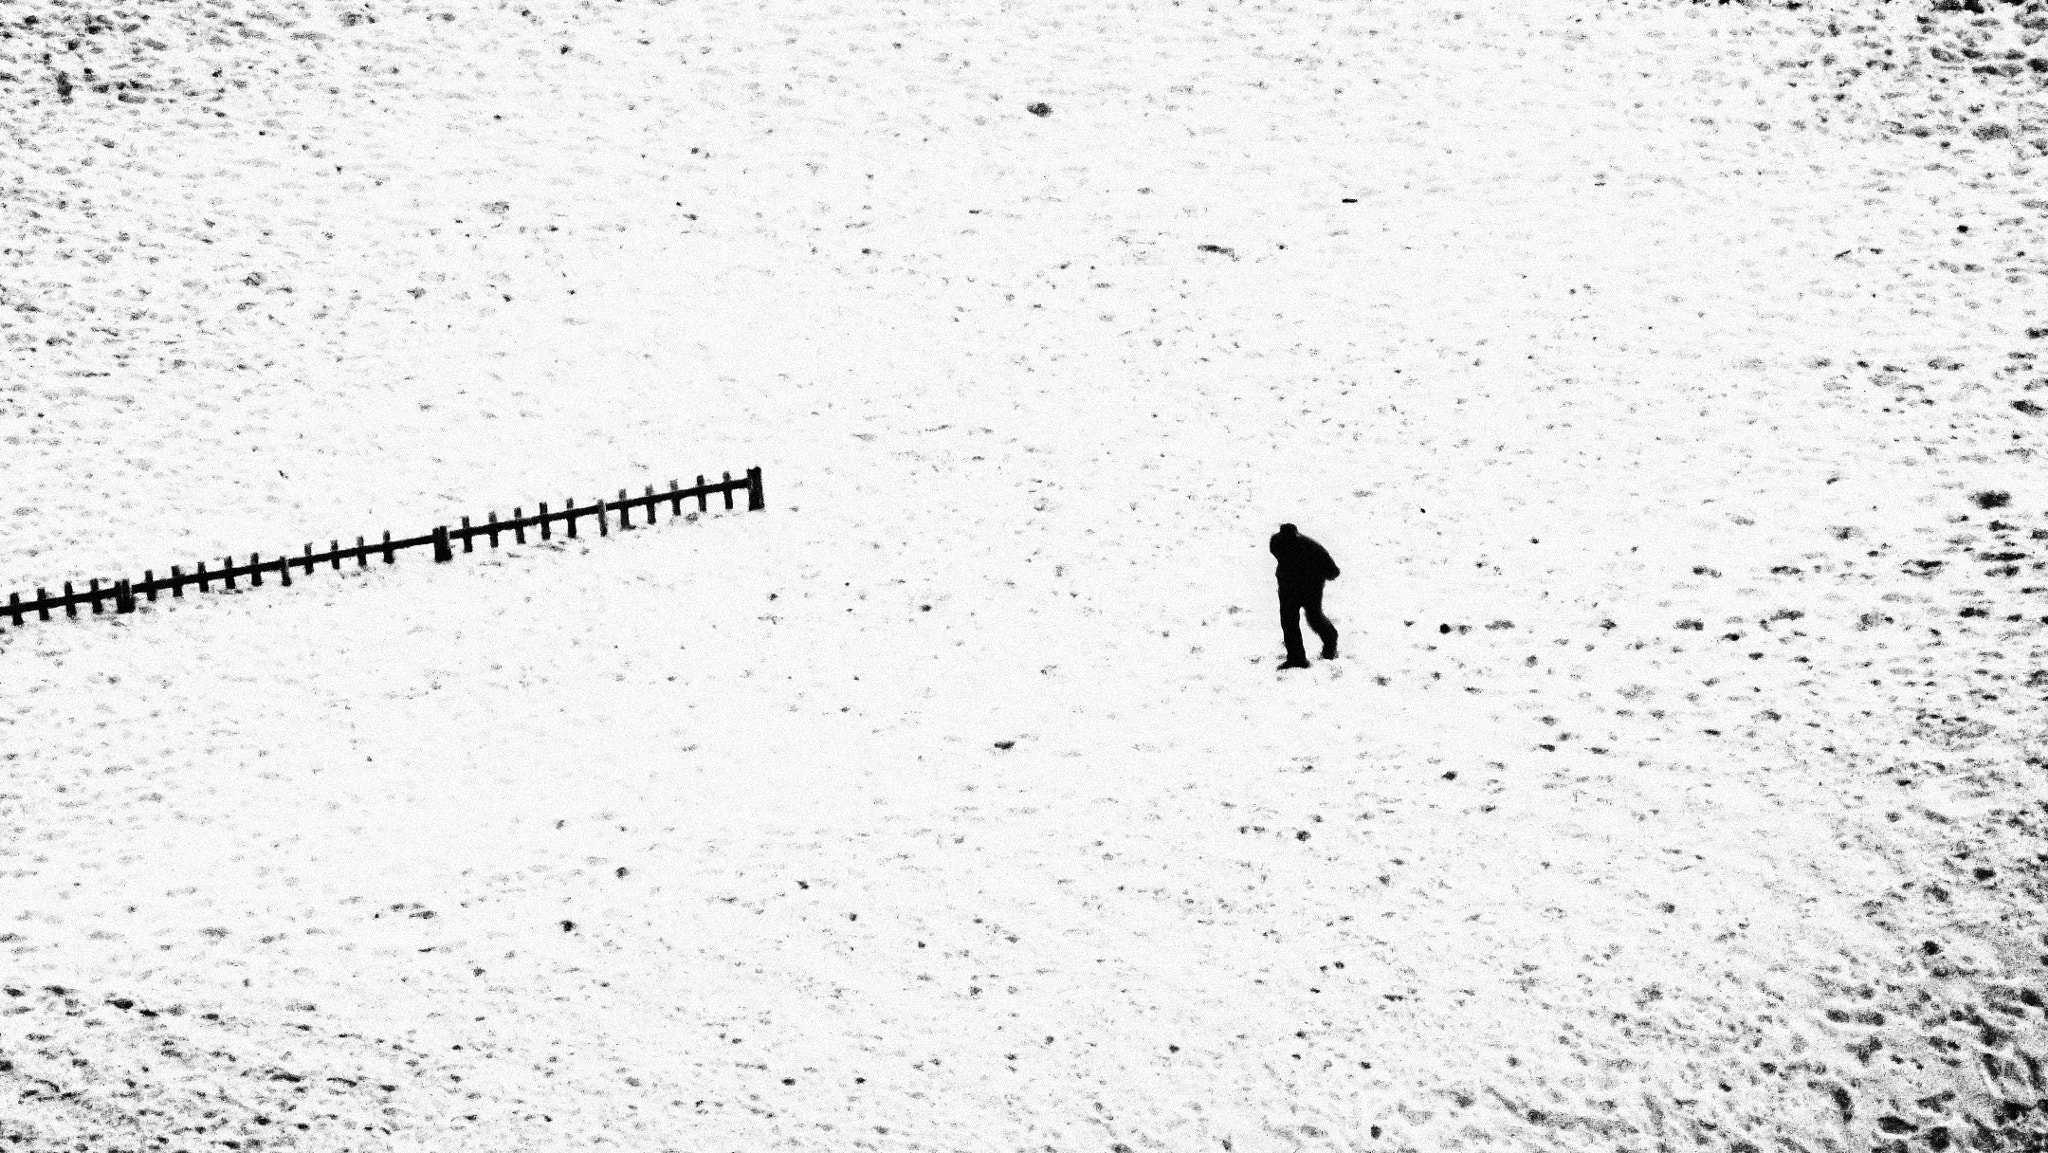 Photograph Castles Made Of Sand by Paulo Abrantes on 500px